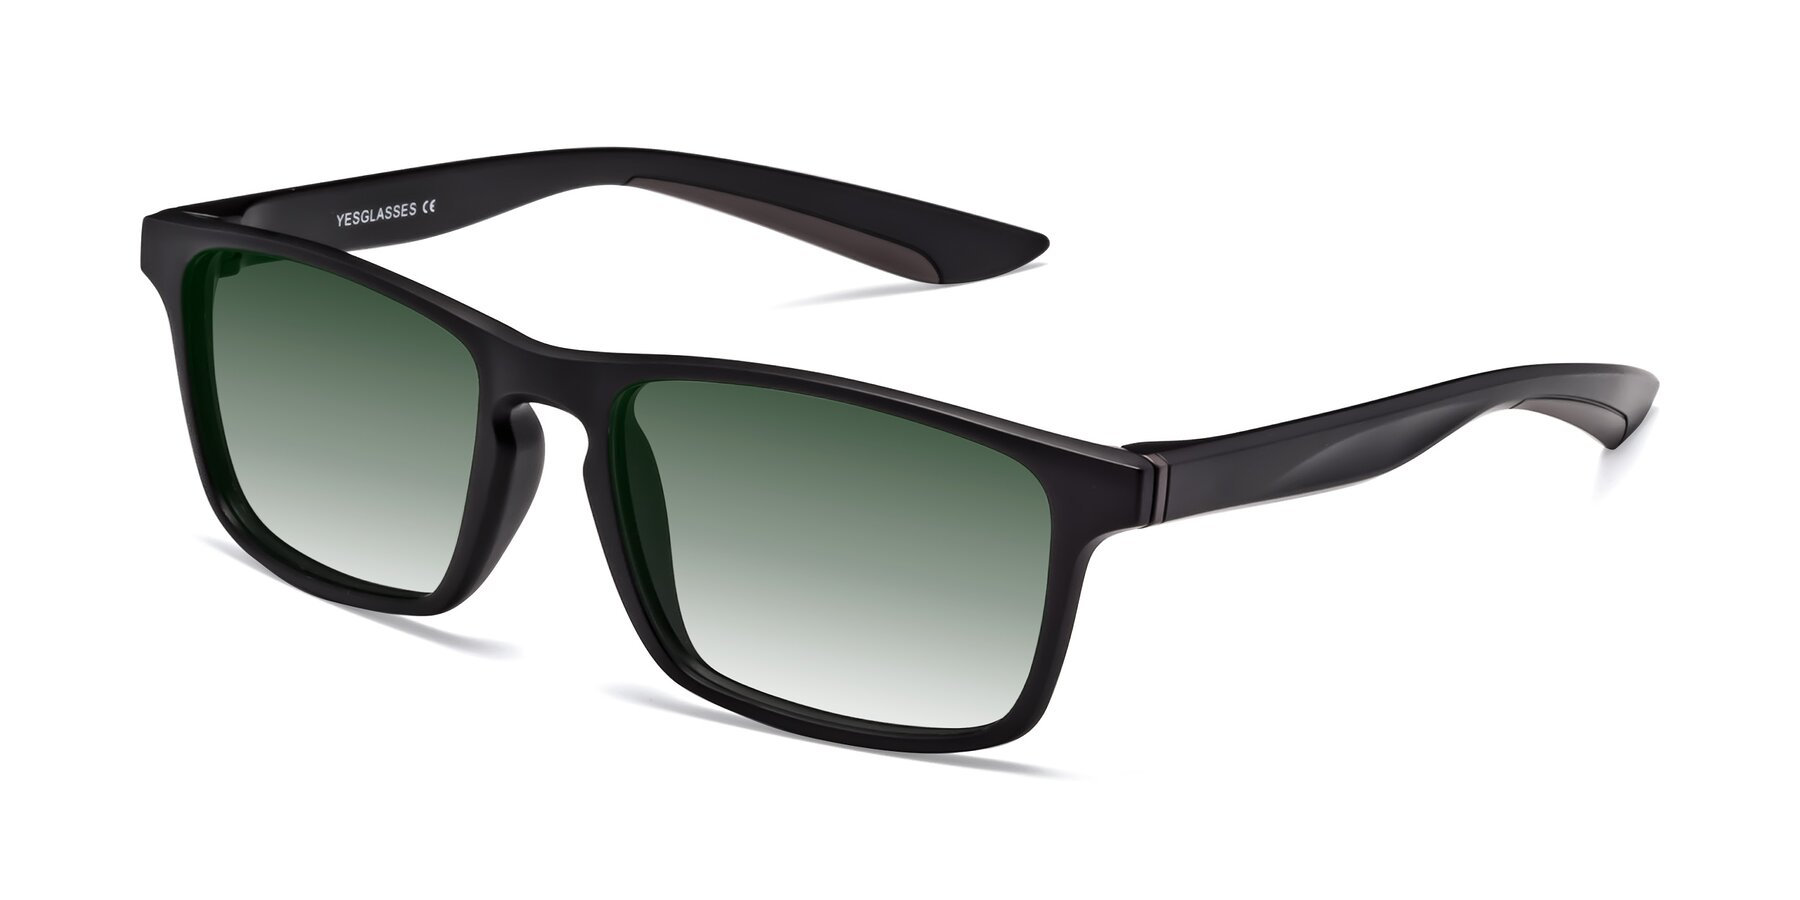 Angle of Passion in Matte Black-Coffee with Green Gradient Lenses